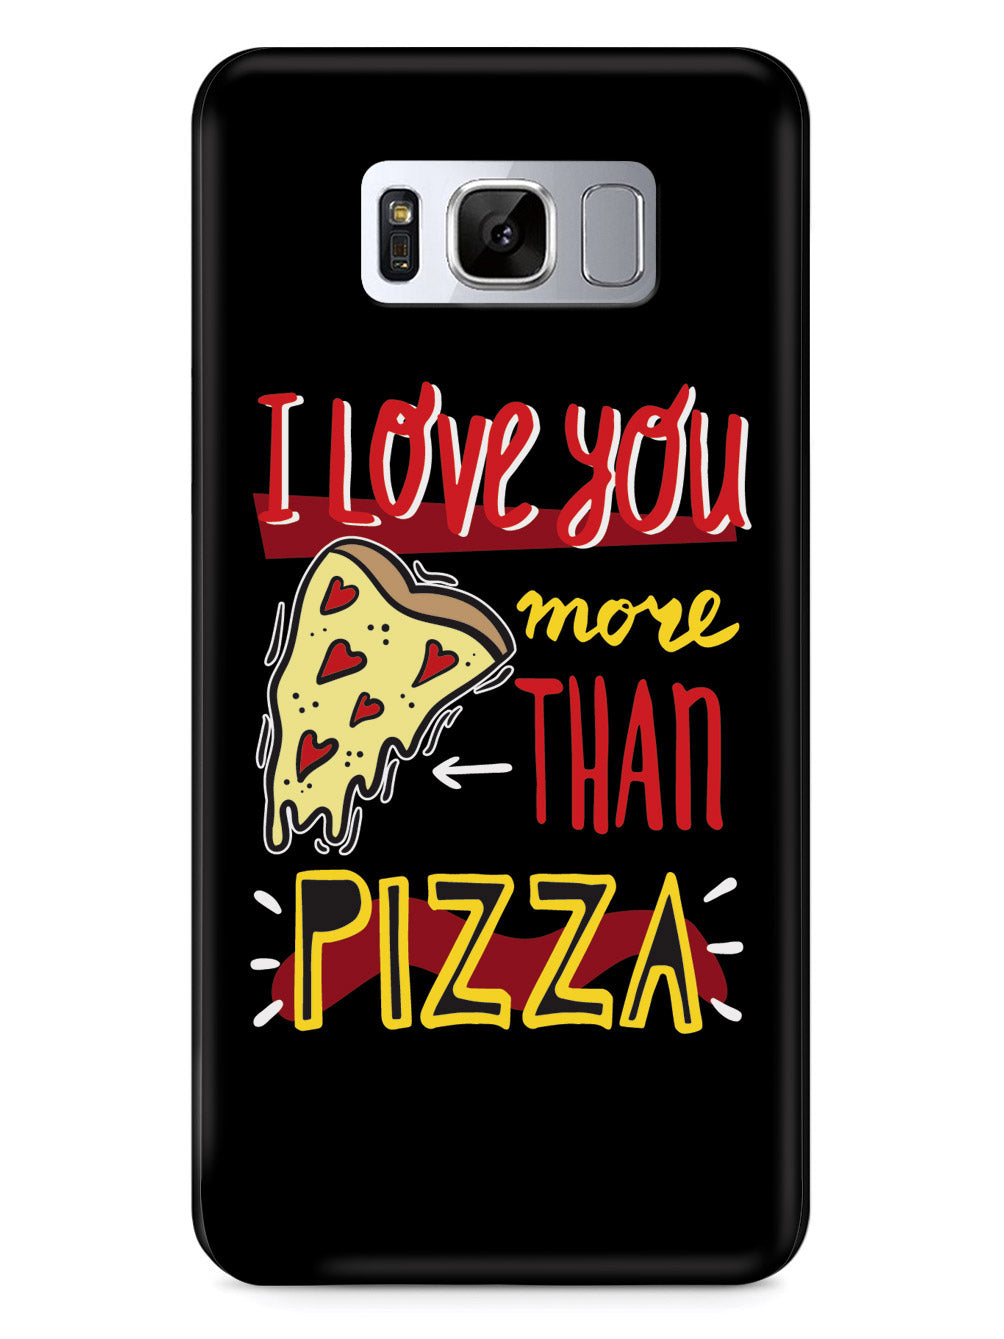 I Love You More Than Pizza - Black Case